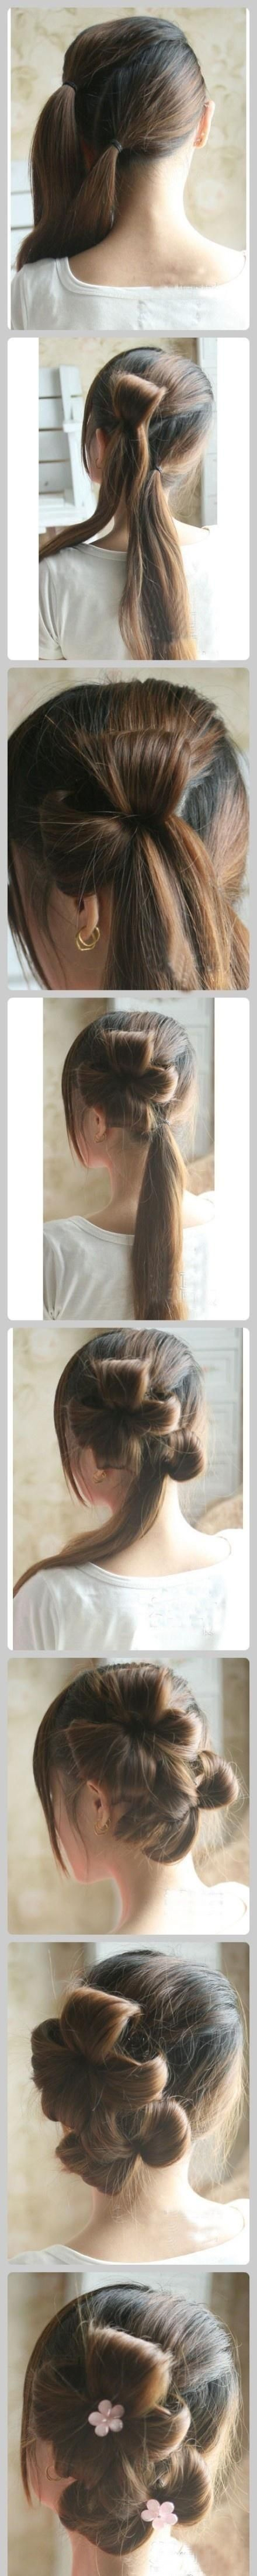 Can be elegant or cute with the right accessorie! | hair-sublime.com